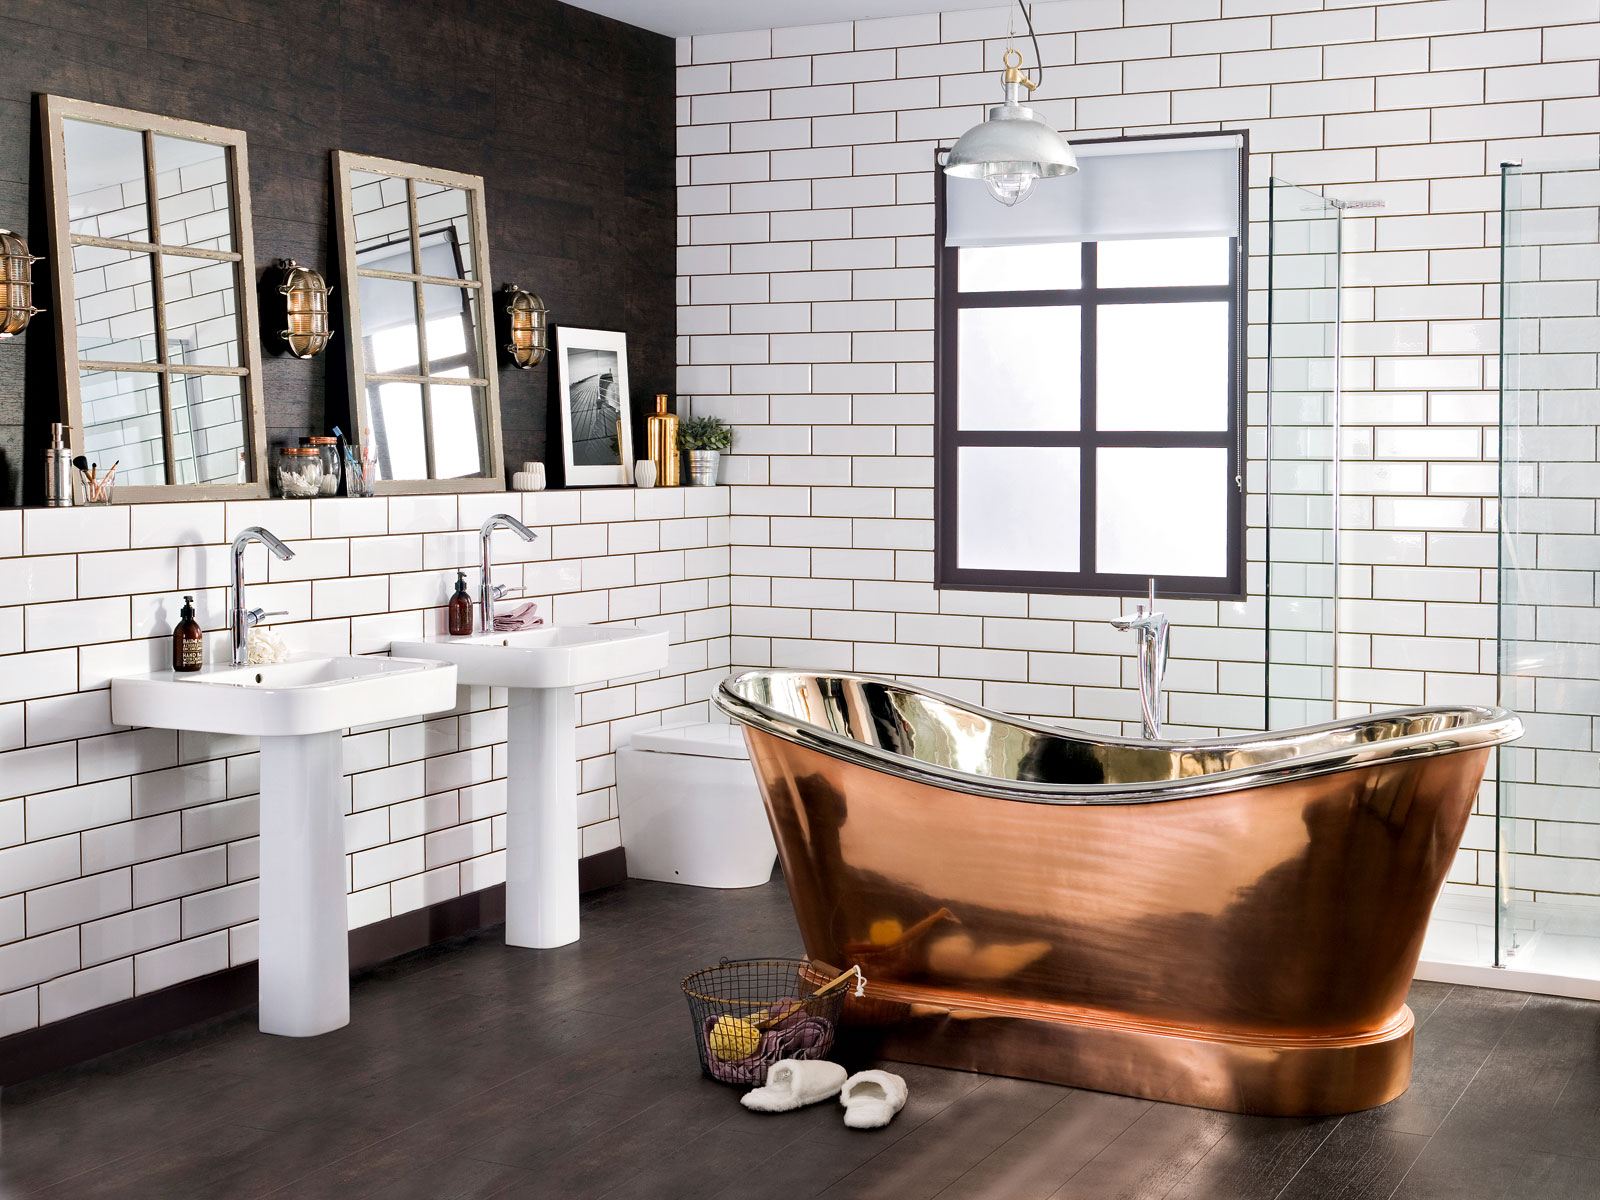 How to get the industrial look sophie robinson - Salle de bain style industriel ...